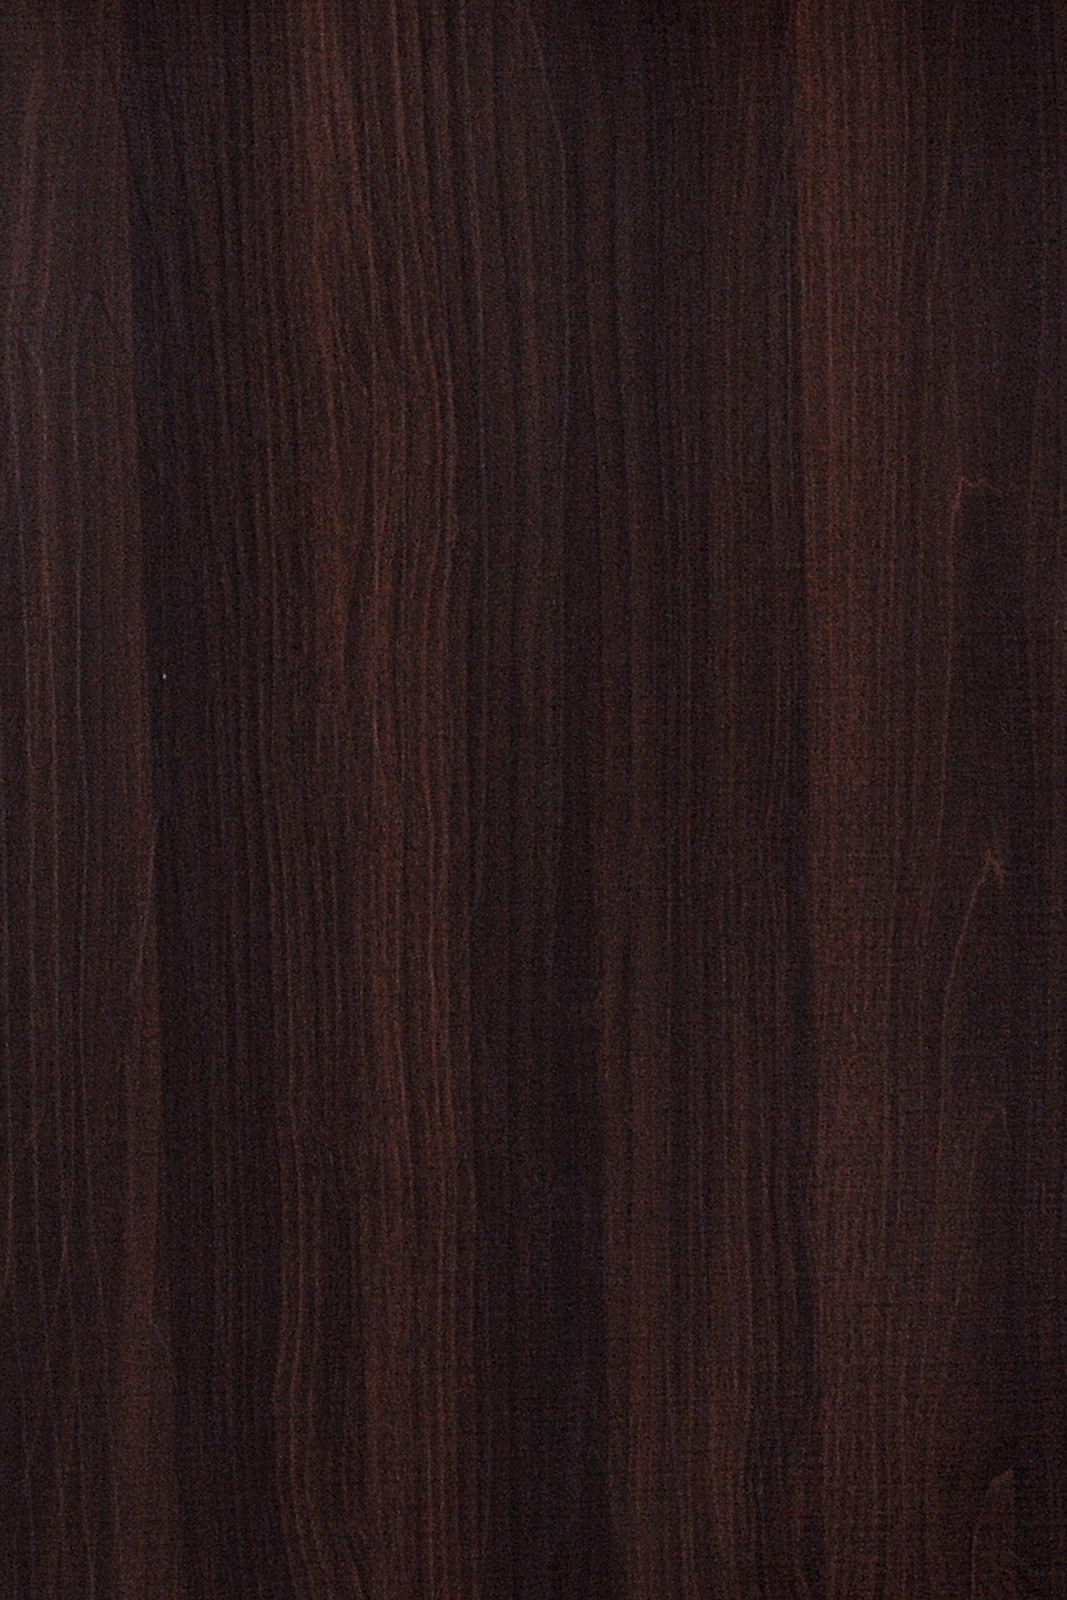 23 Elegant Palm Acacia Hardwood Flooring 2021 free download palm acacia hardwood flooring of decorative laminates sunmica 1 0 mm aica sunmica throughout sevilla yoko light